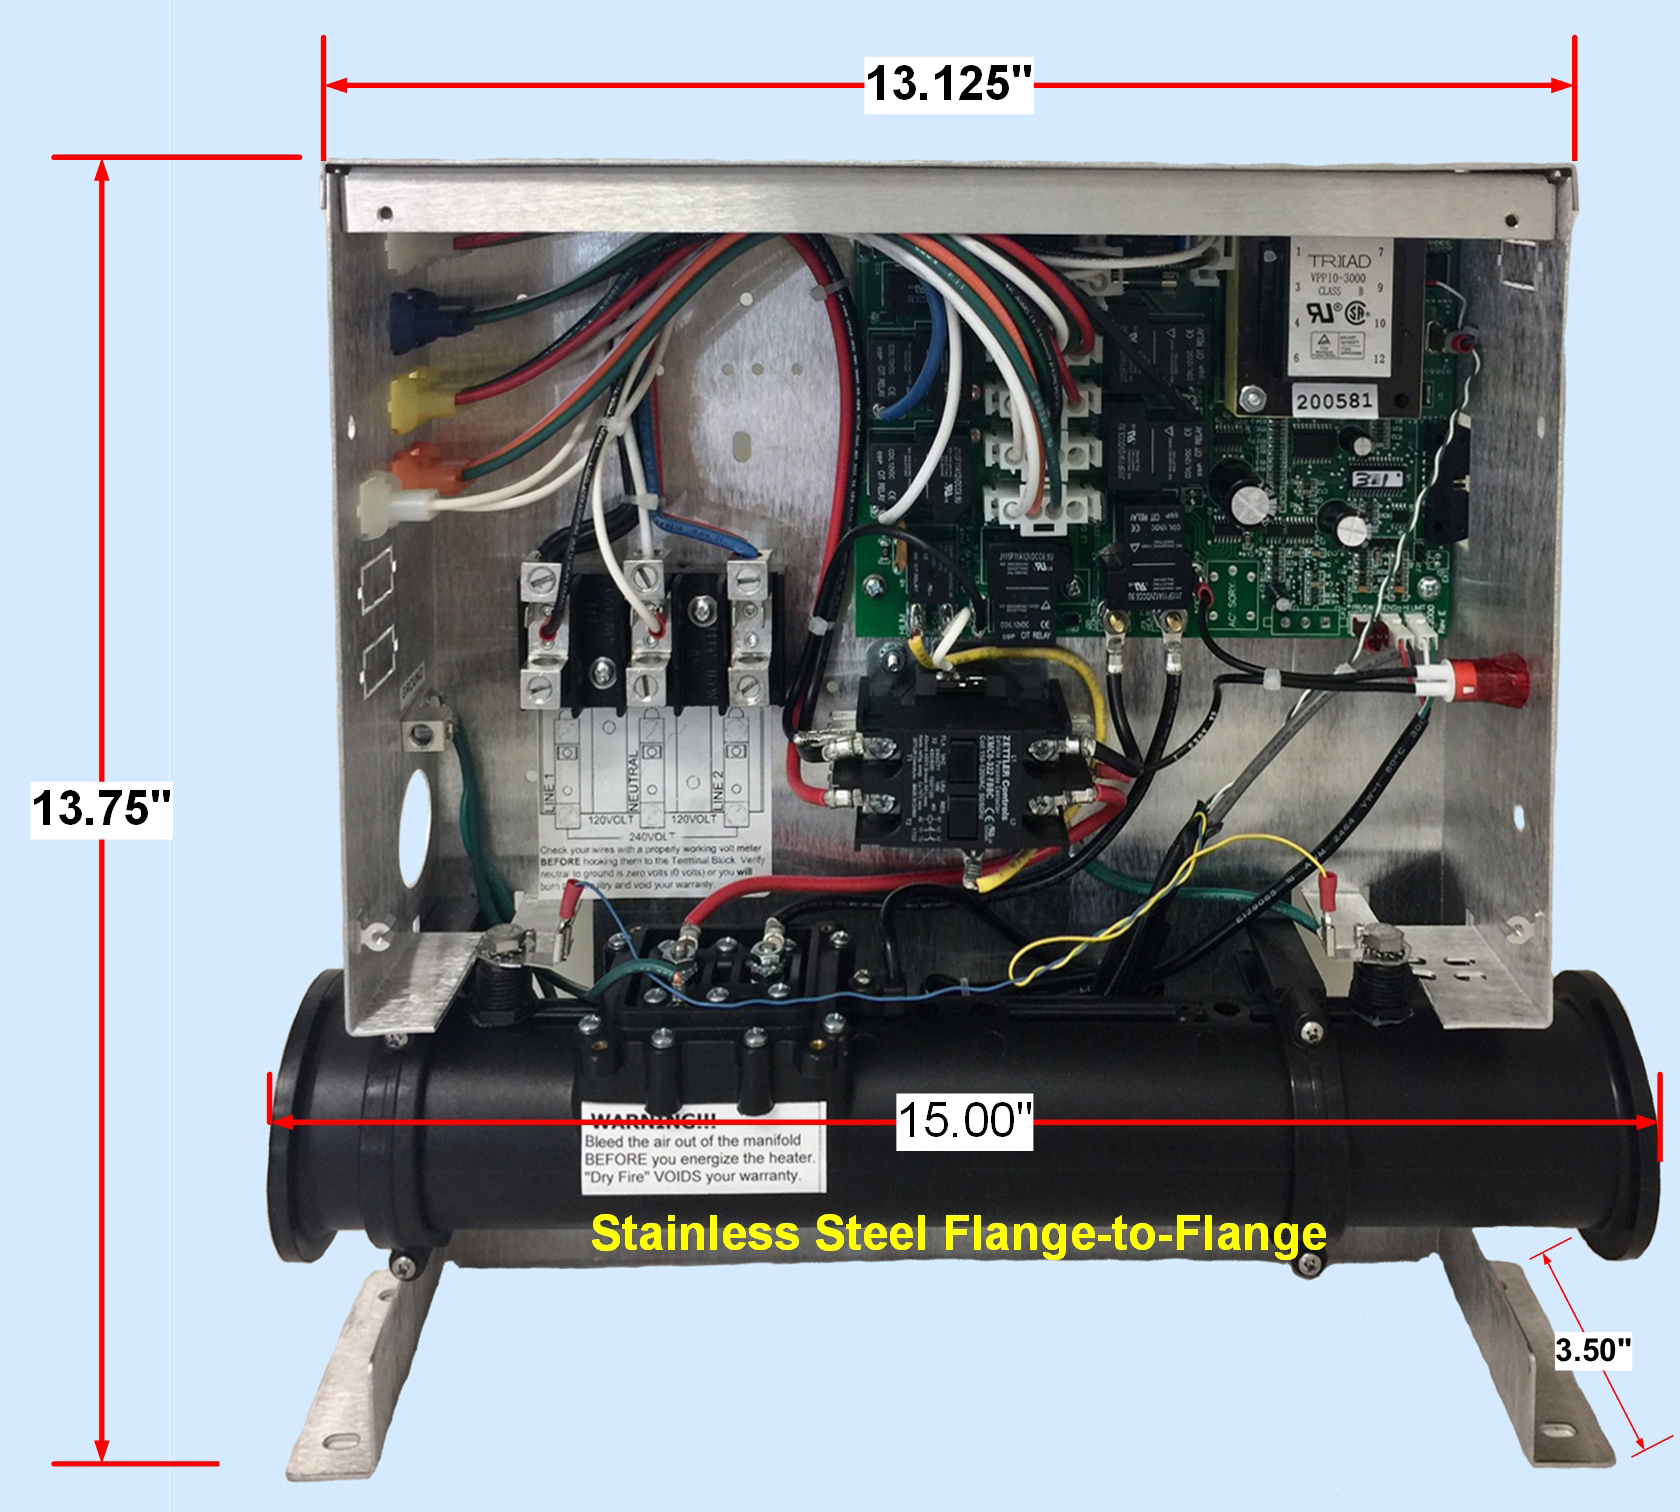 Pool Motor Parts Diagram furthermore Spa Pump Wiring Diagram furthermore 2 Hp Energy Efficient Pool Pump Motors furthermore Hot Tub Wiring Diagram Download furthermore Myspapartsstore. on jacuzzi pump motors wiring diagrams